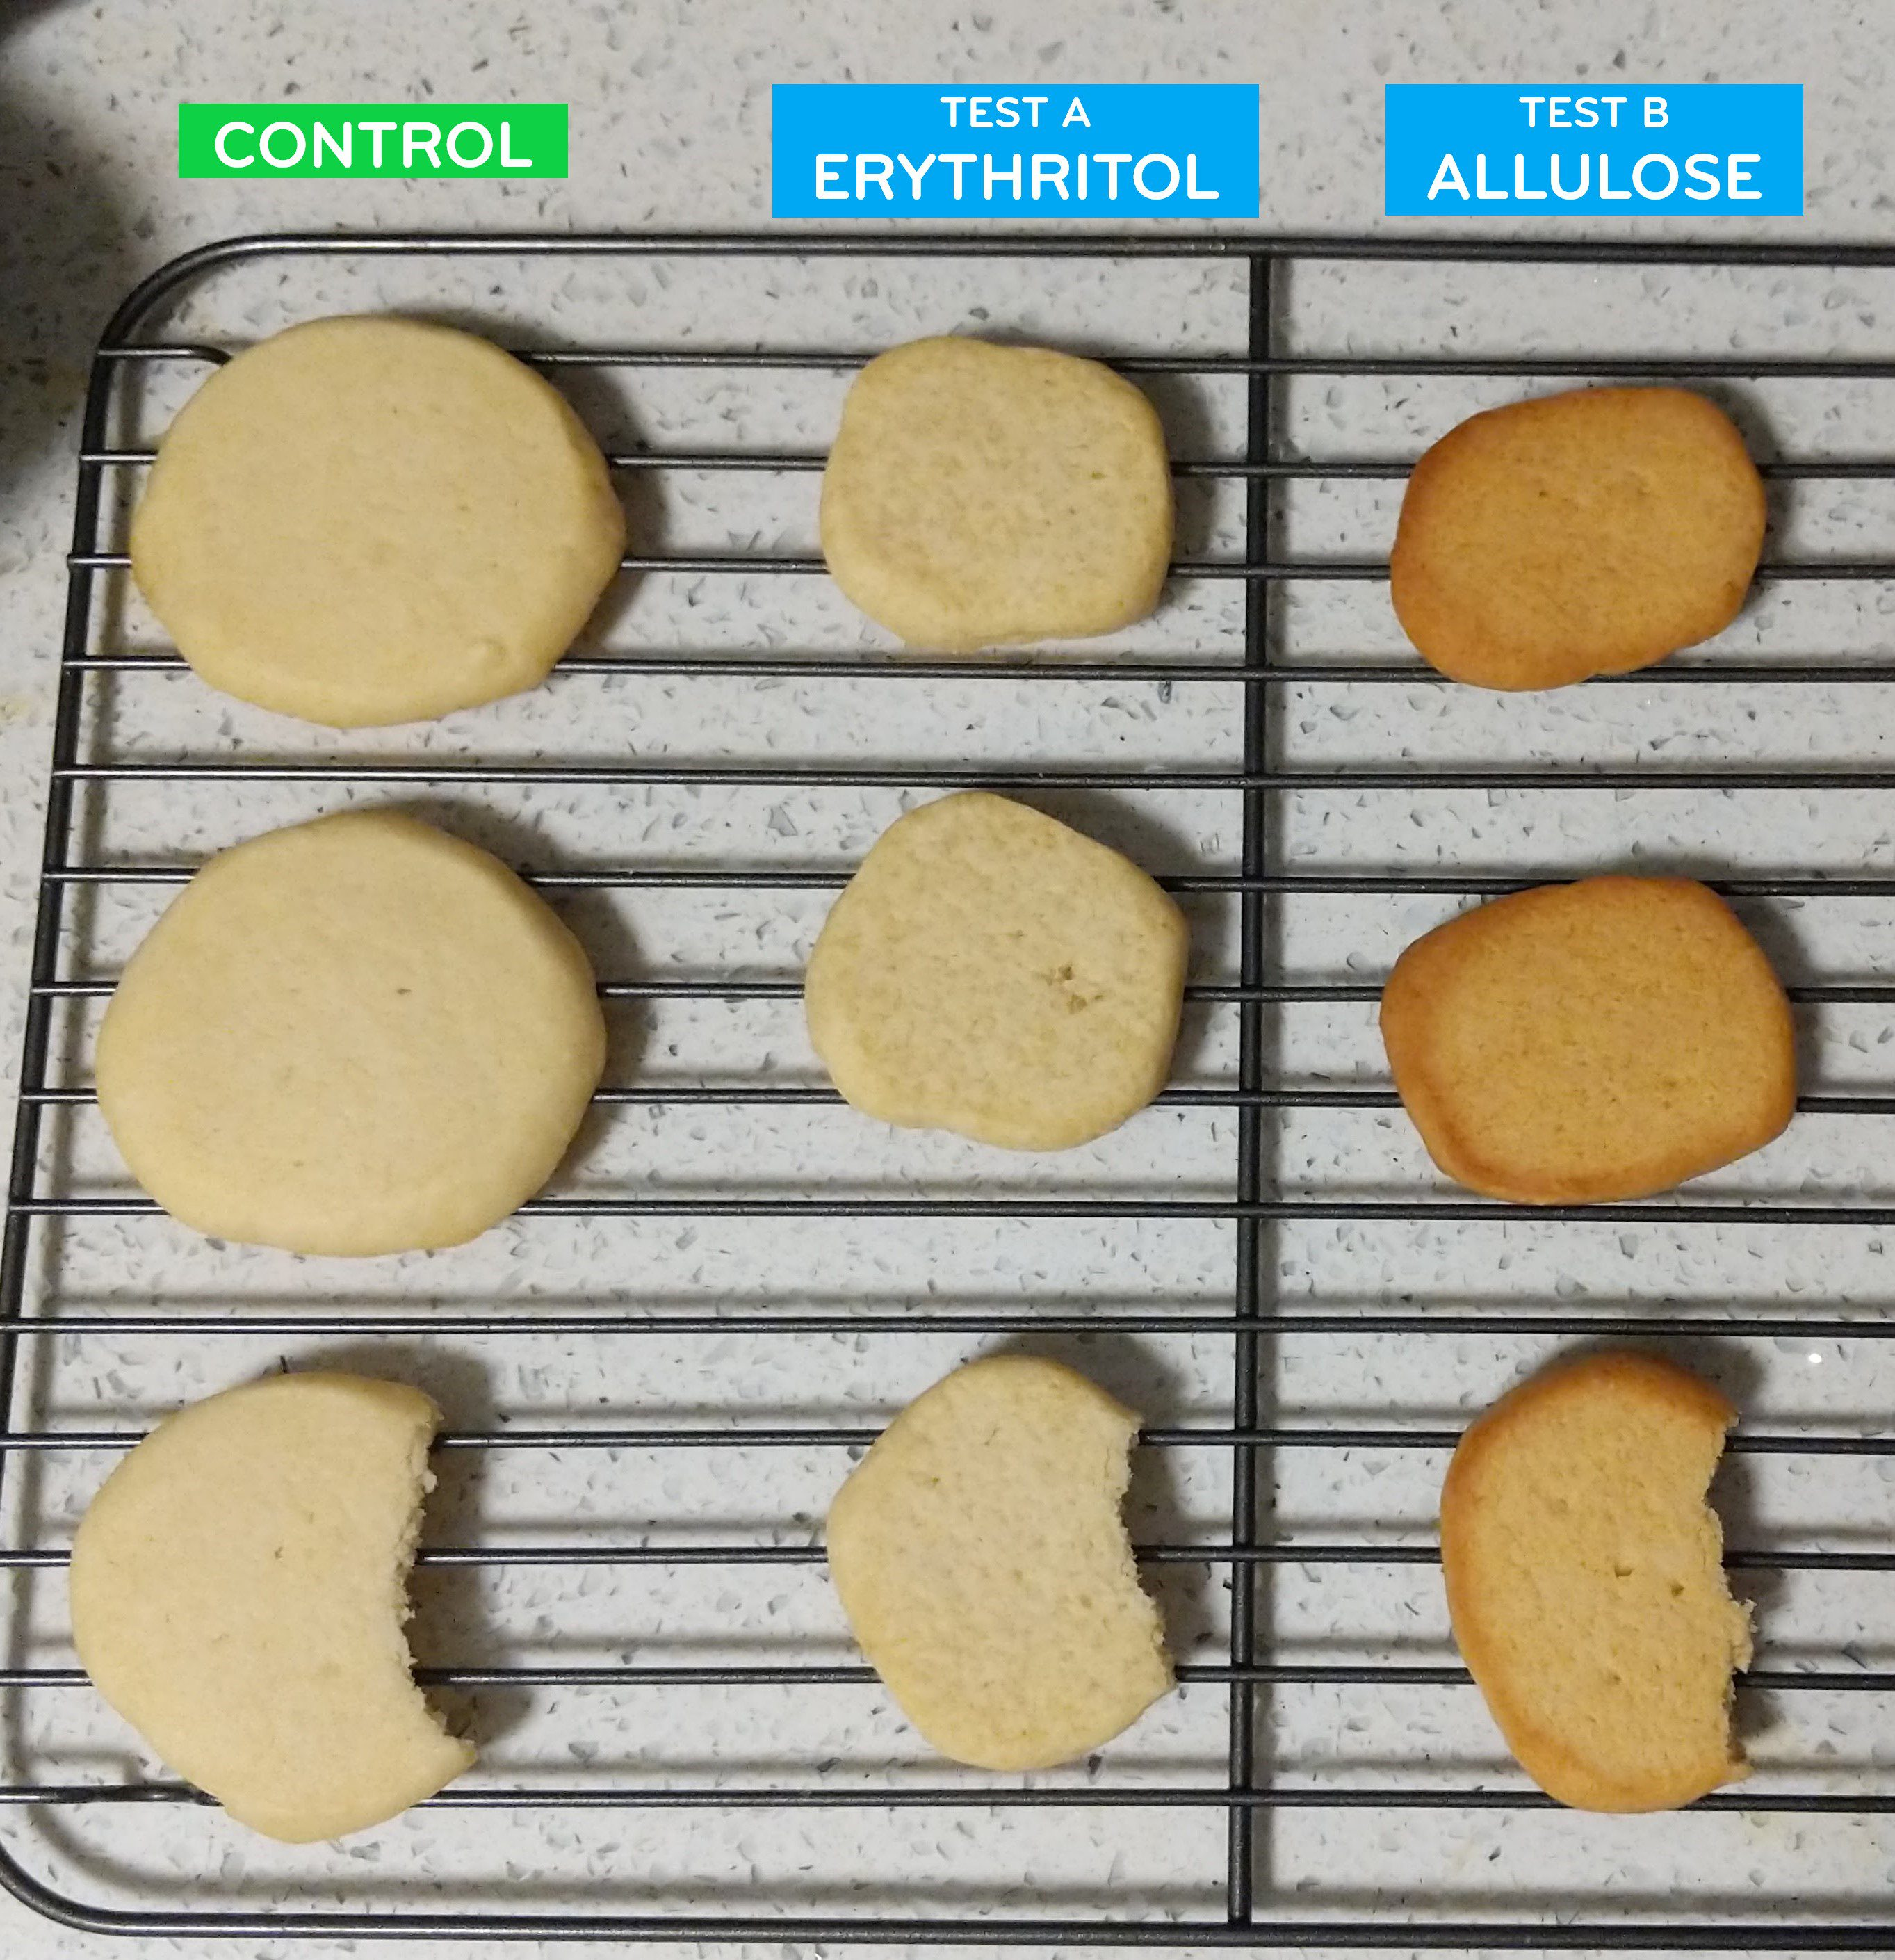 Erythritol vs. Allulose Sugar Cookie Test Results